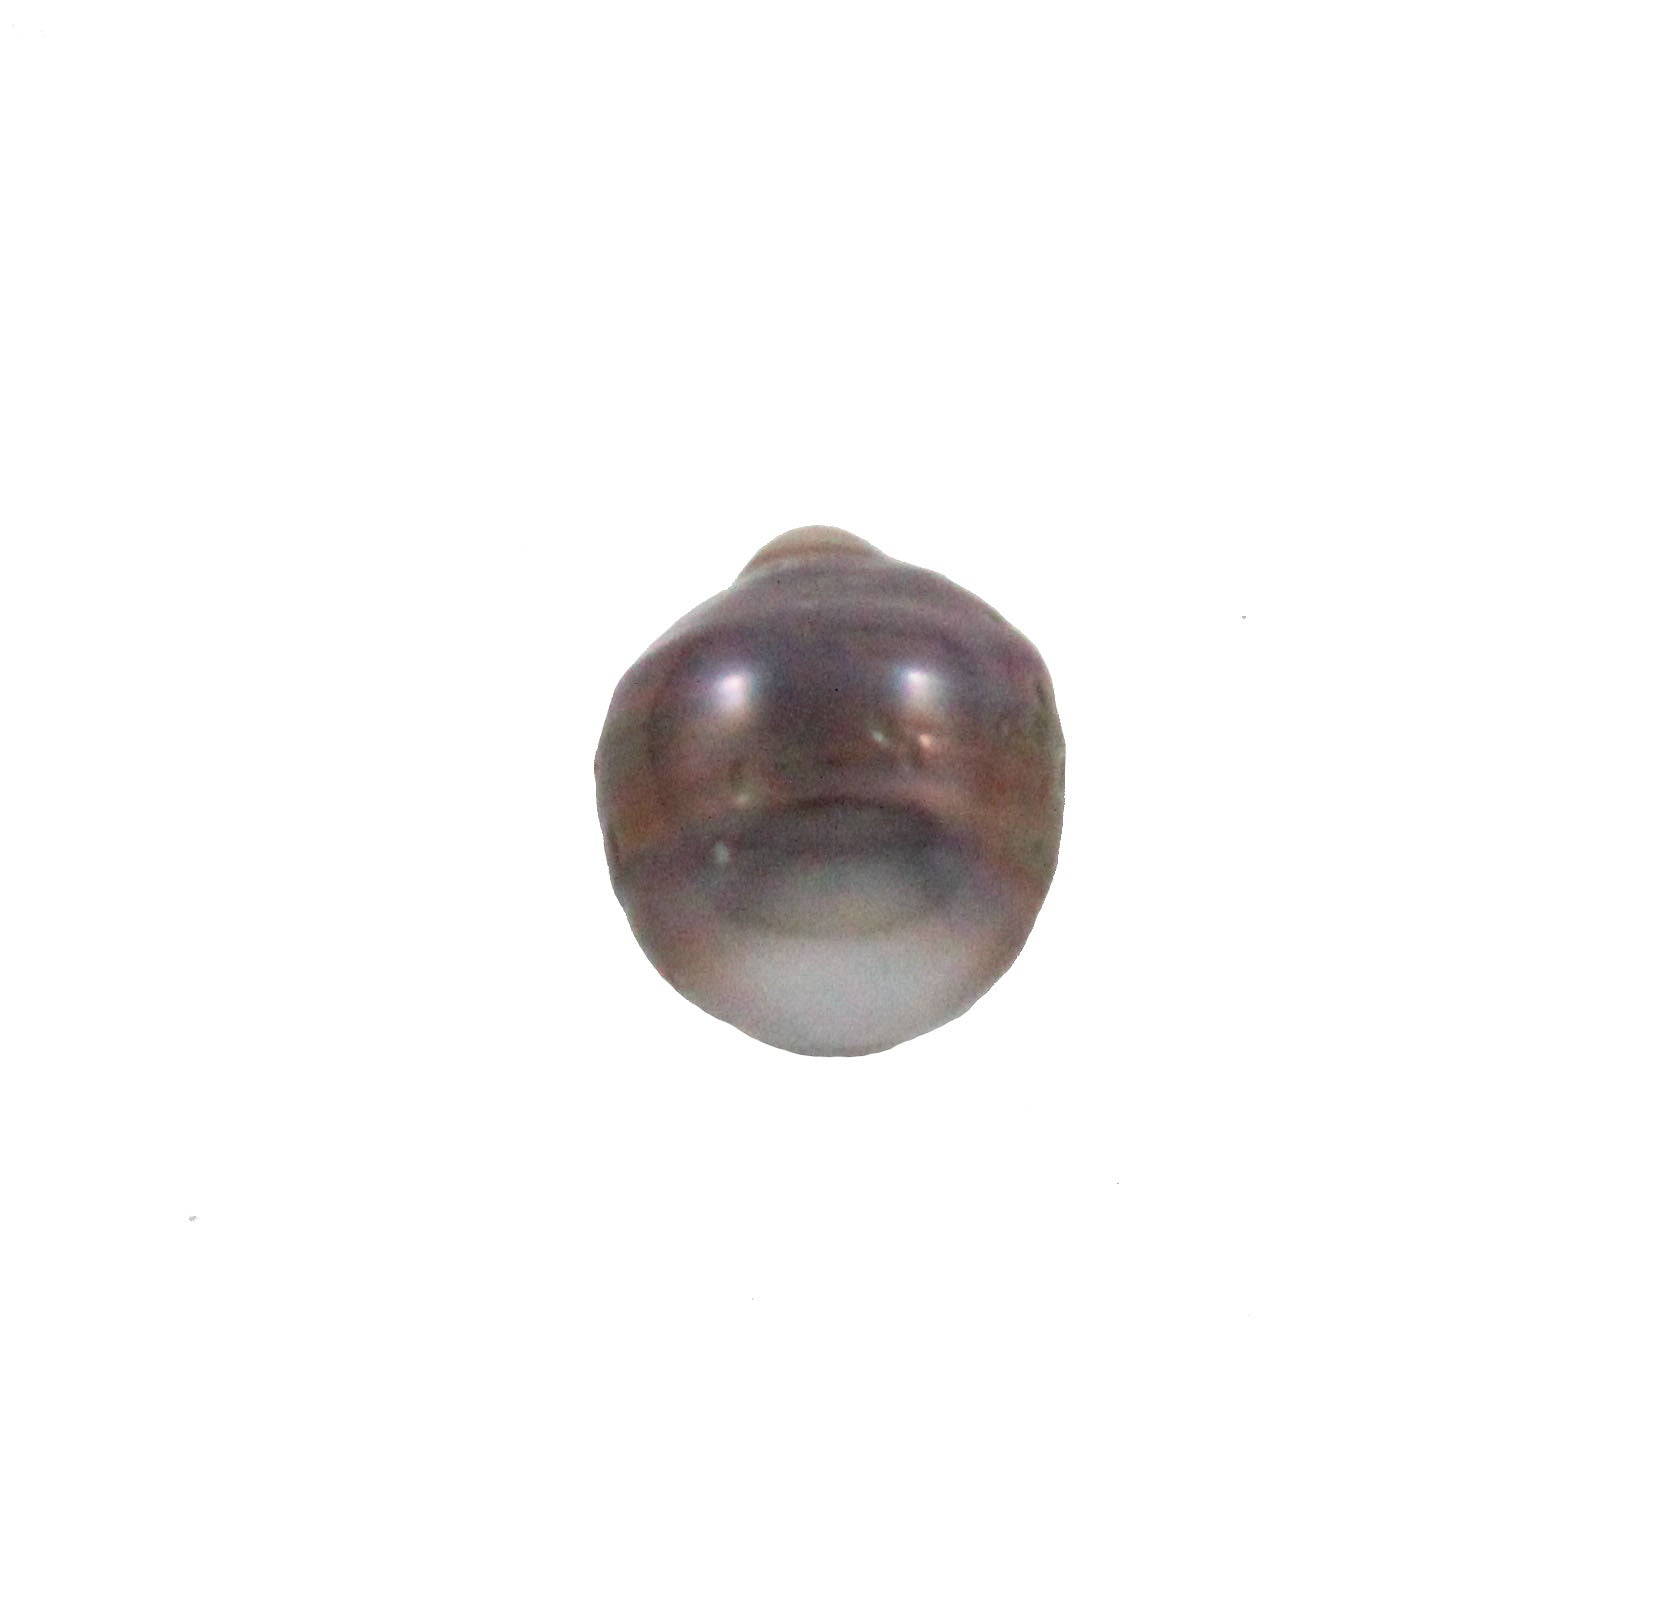 Tahitian pearl undrilled 1.04gr mm 10.48x9mm - Purchase only with custom order - Sarah Hughes - 5